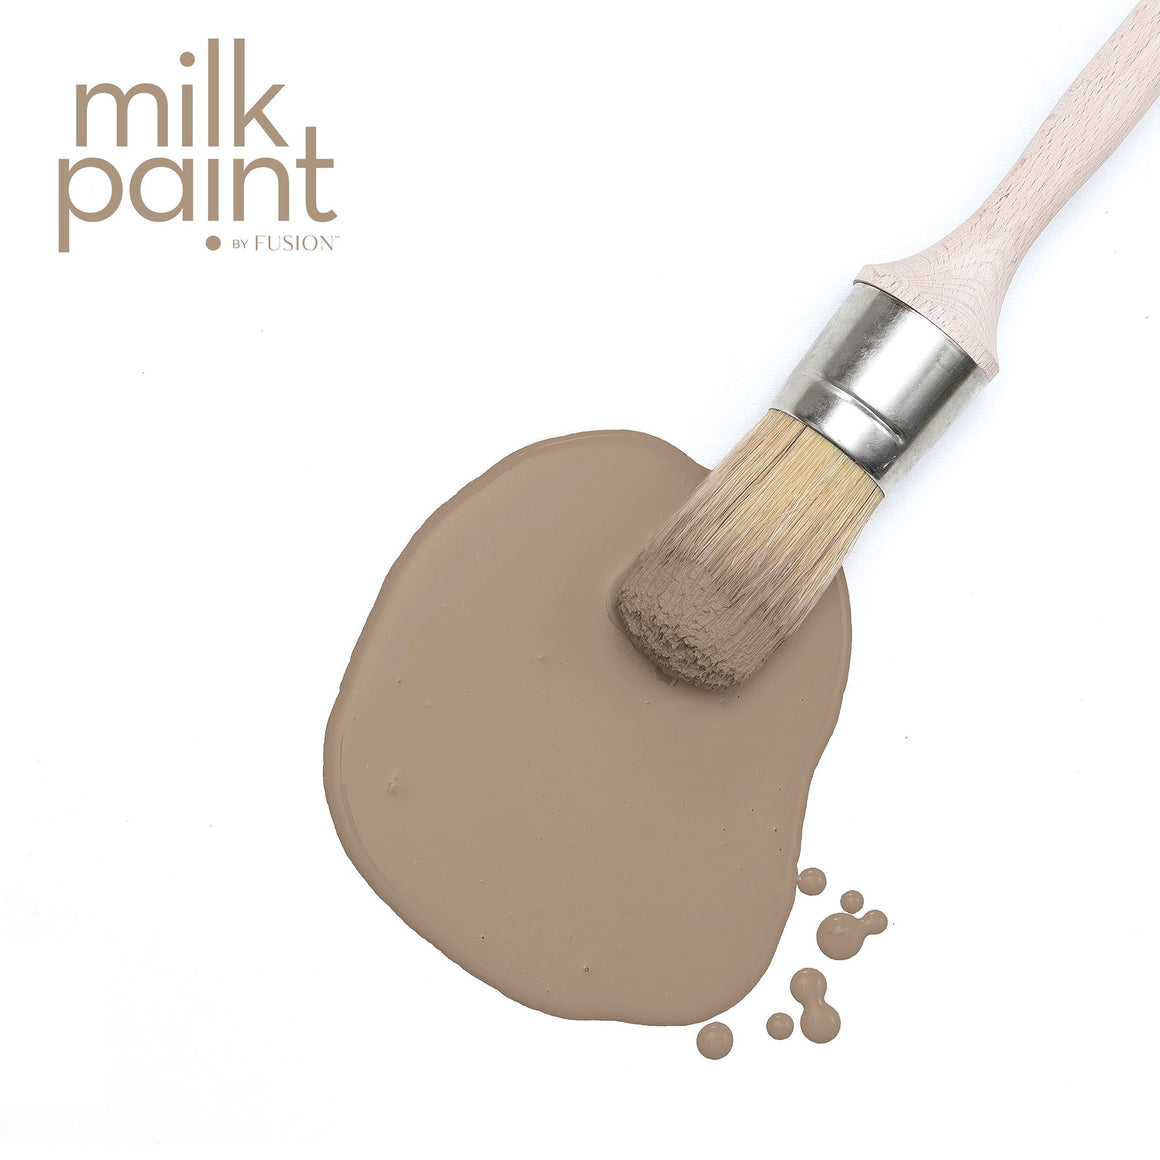 Almond Latte Milk Paint